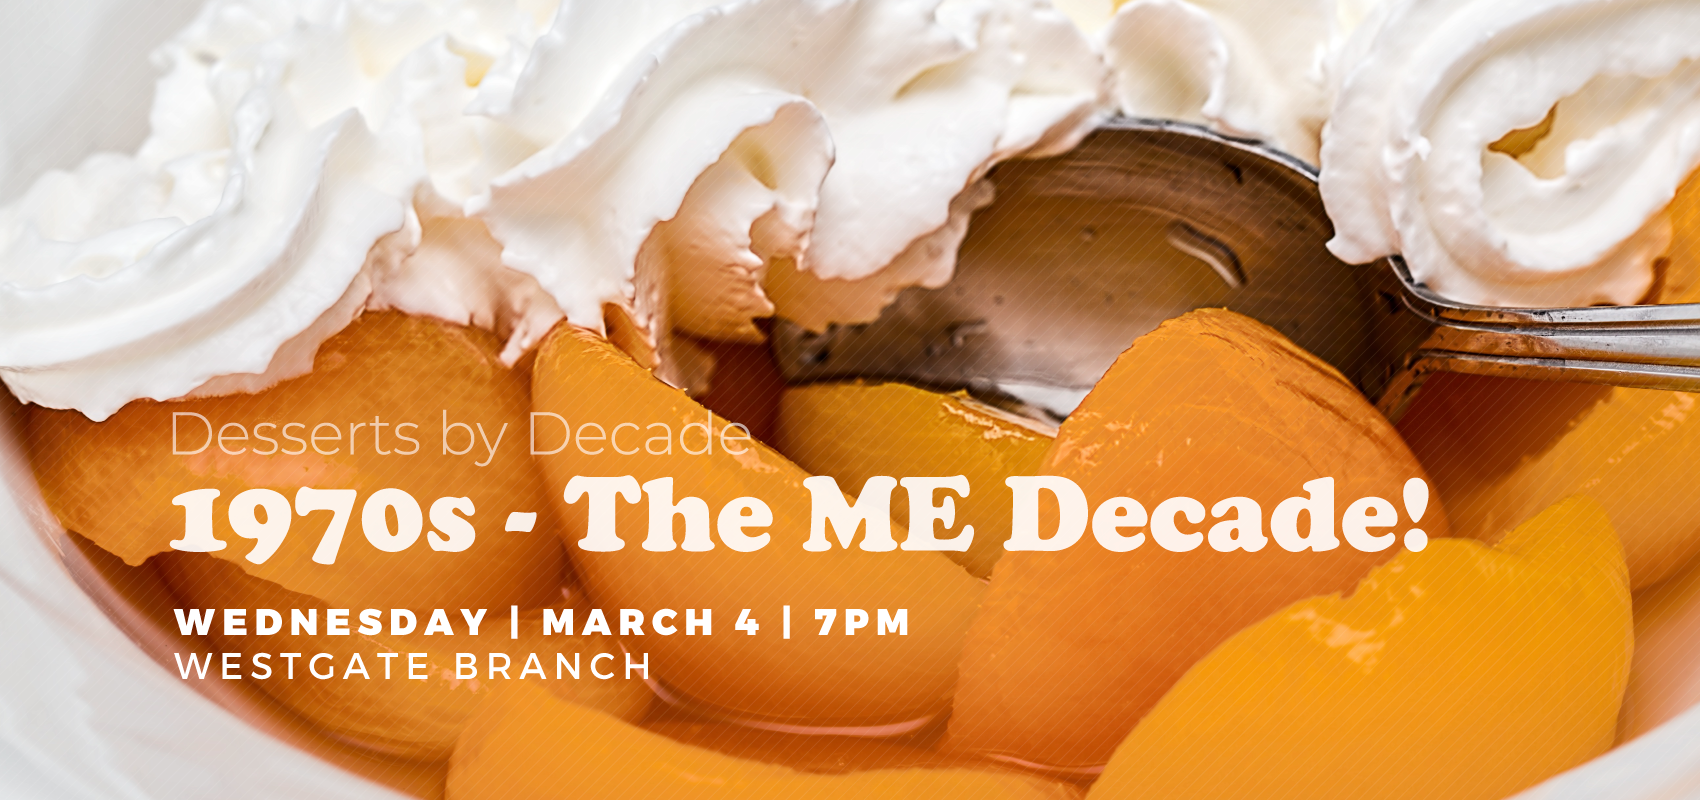 Desserts by Decade: 1970s - The ME Decade!. .